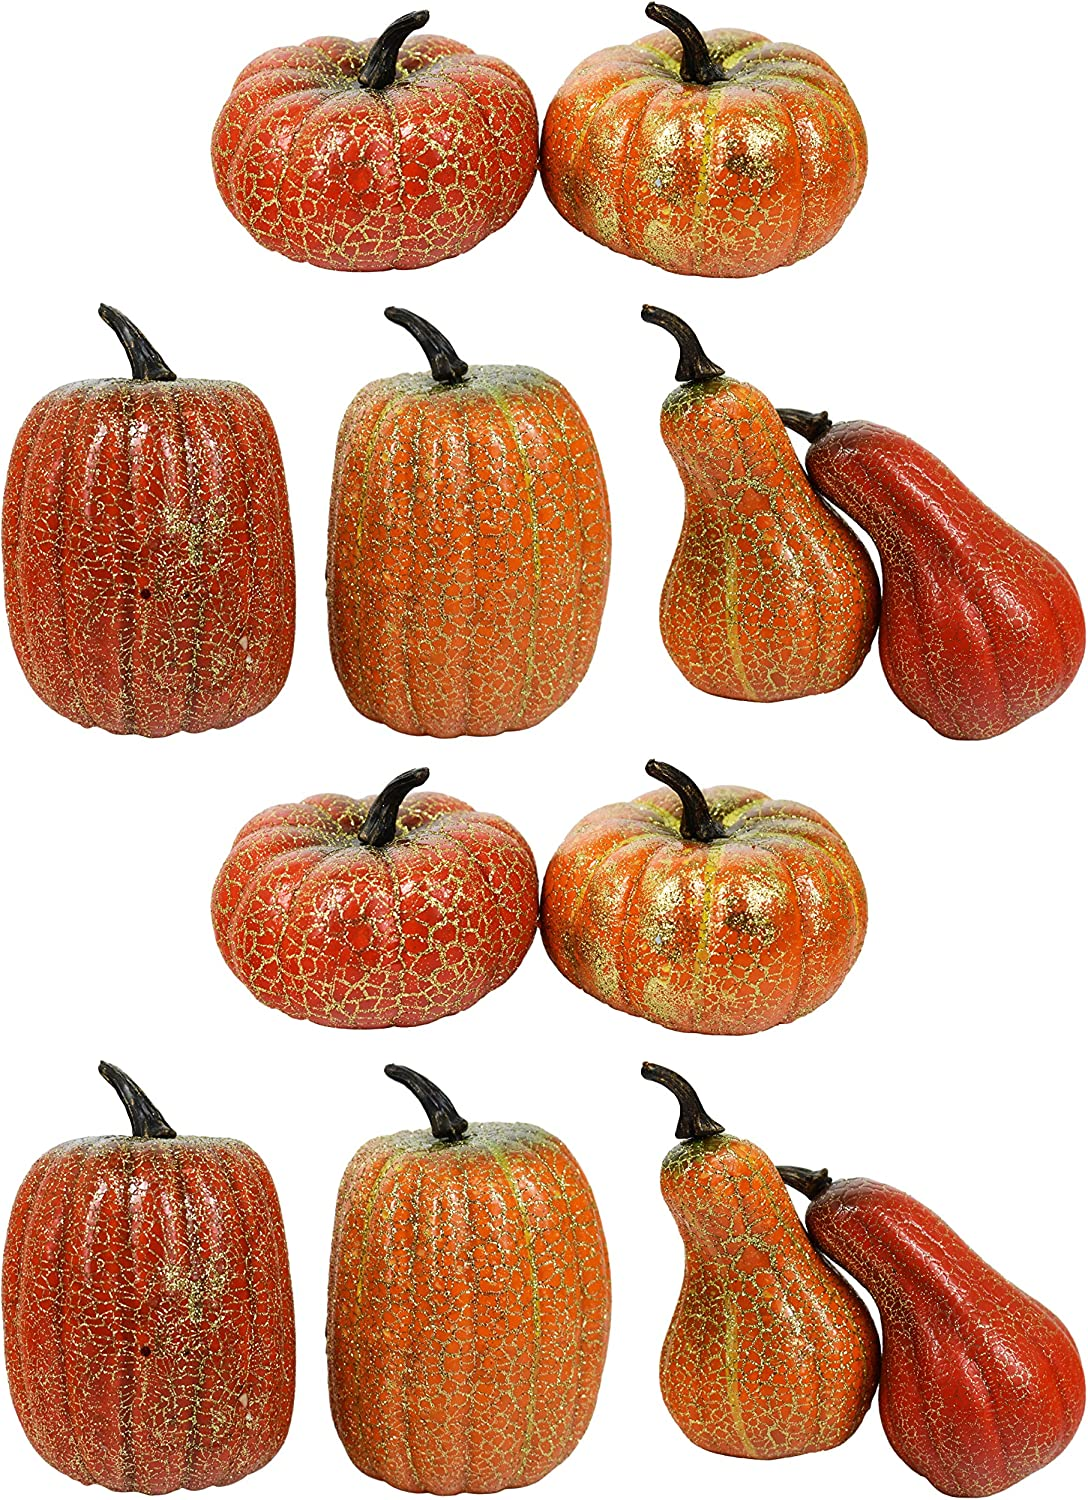 """Black Duck Brand Set of 12 Gold Crackle 4"""" Pumpkins & Gourds - Great for Table Decor and Festive Baskets"""